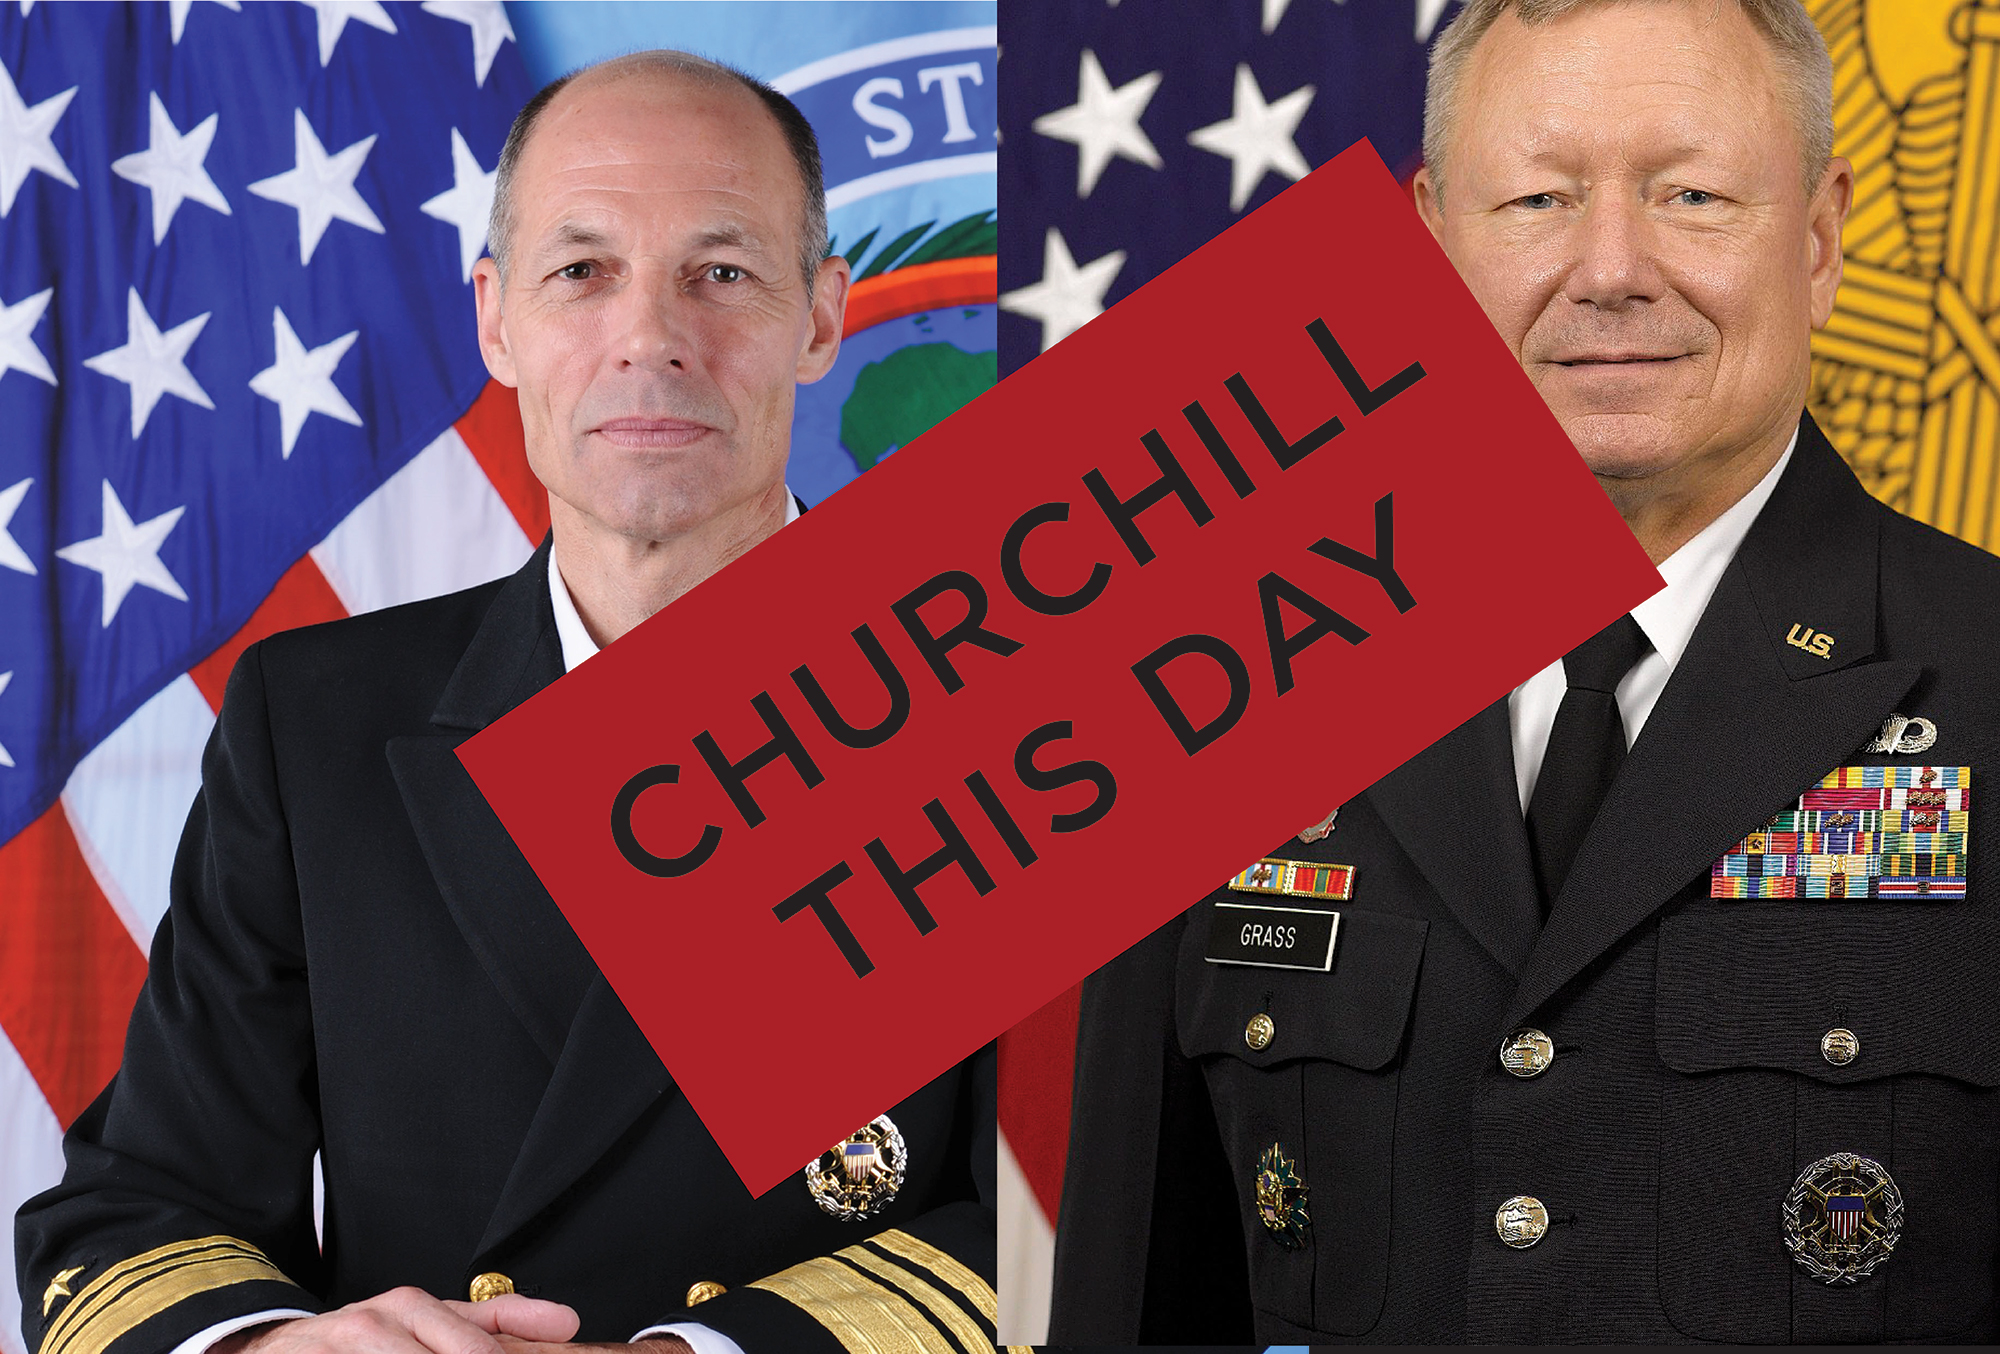 Churchill This Day Admrial Franken General Grass